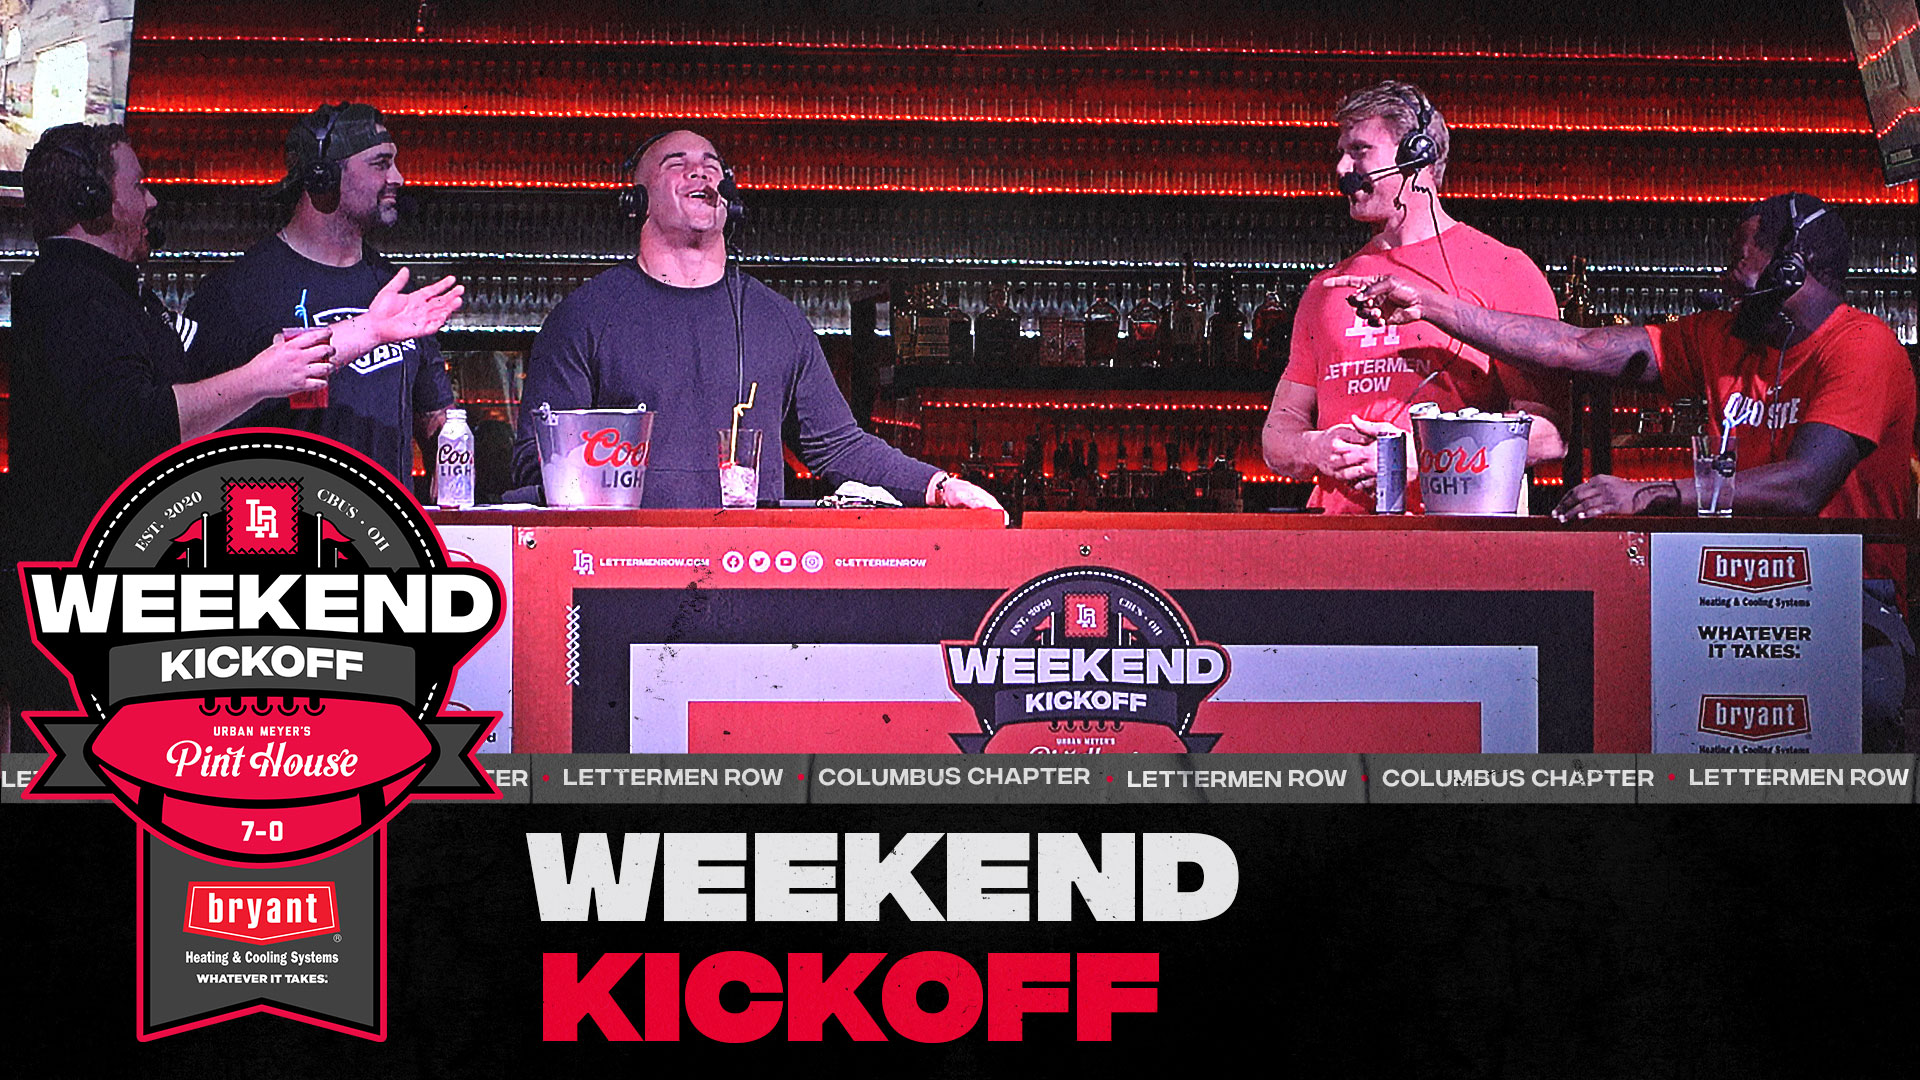 Weekend-Kickoff-featured-image-B